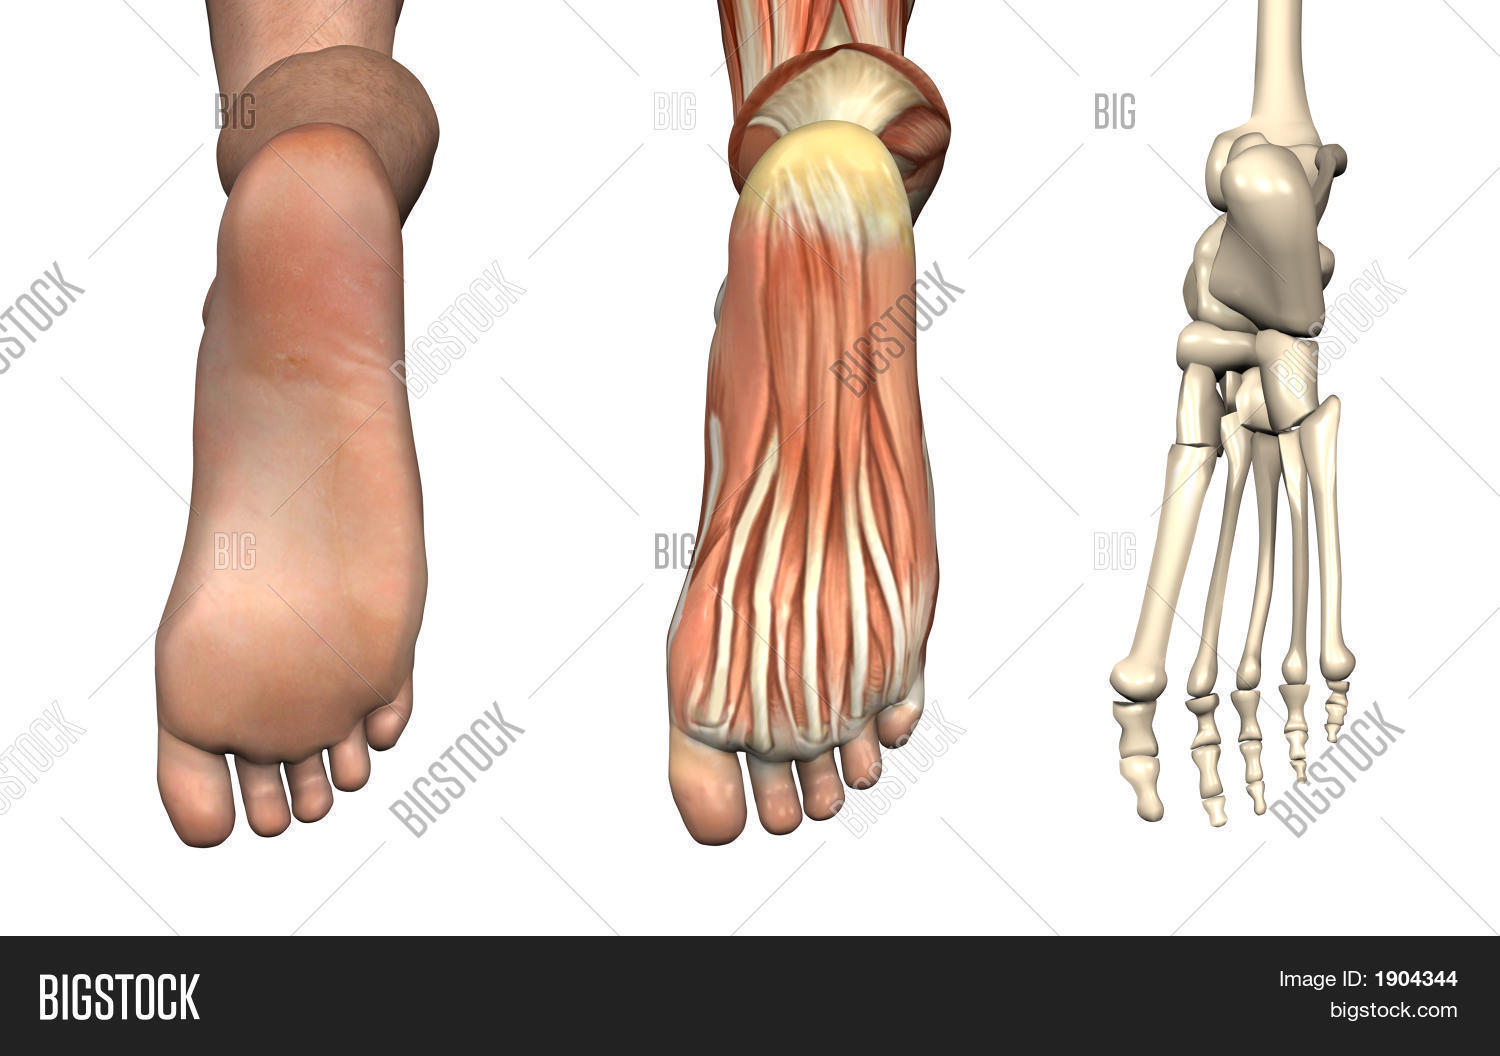 Anatomical Overlays - Image & Photo (Free Trial) | Bigstock